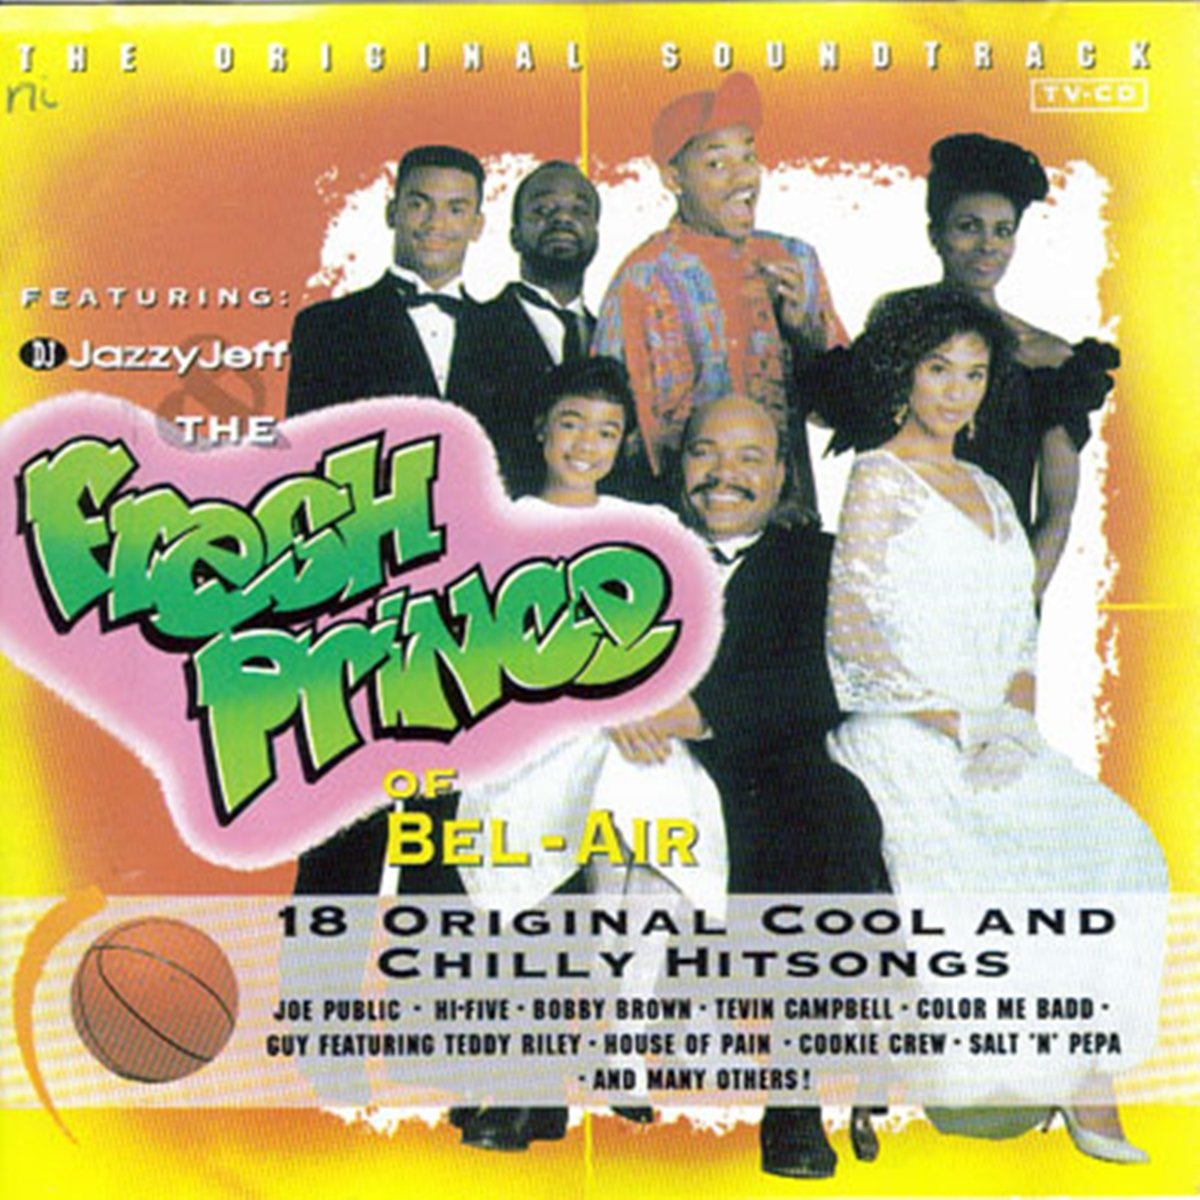 8 12 20 Things You May Not Have Realised About The Fresh Prince Of Bel-Air